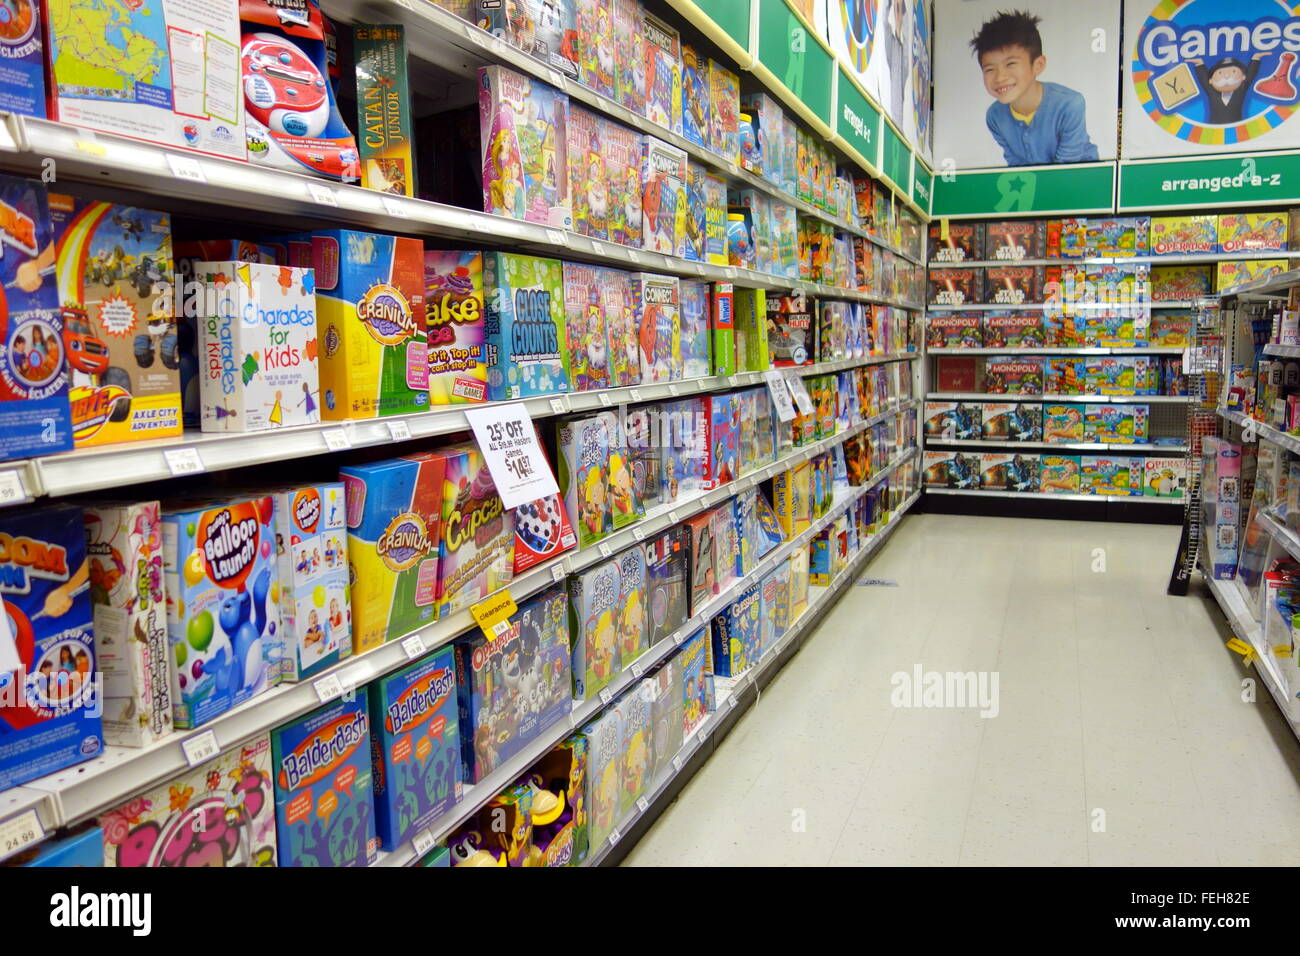 DollarDays carries a large selection of wholesale toys, discount toys and novelties for kids at the lowest prices, perfect for nonprofits, churches, schools and retail stores.